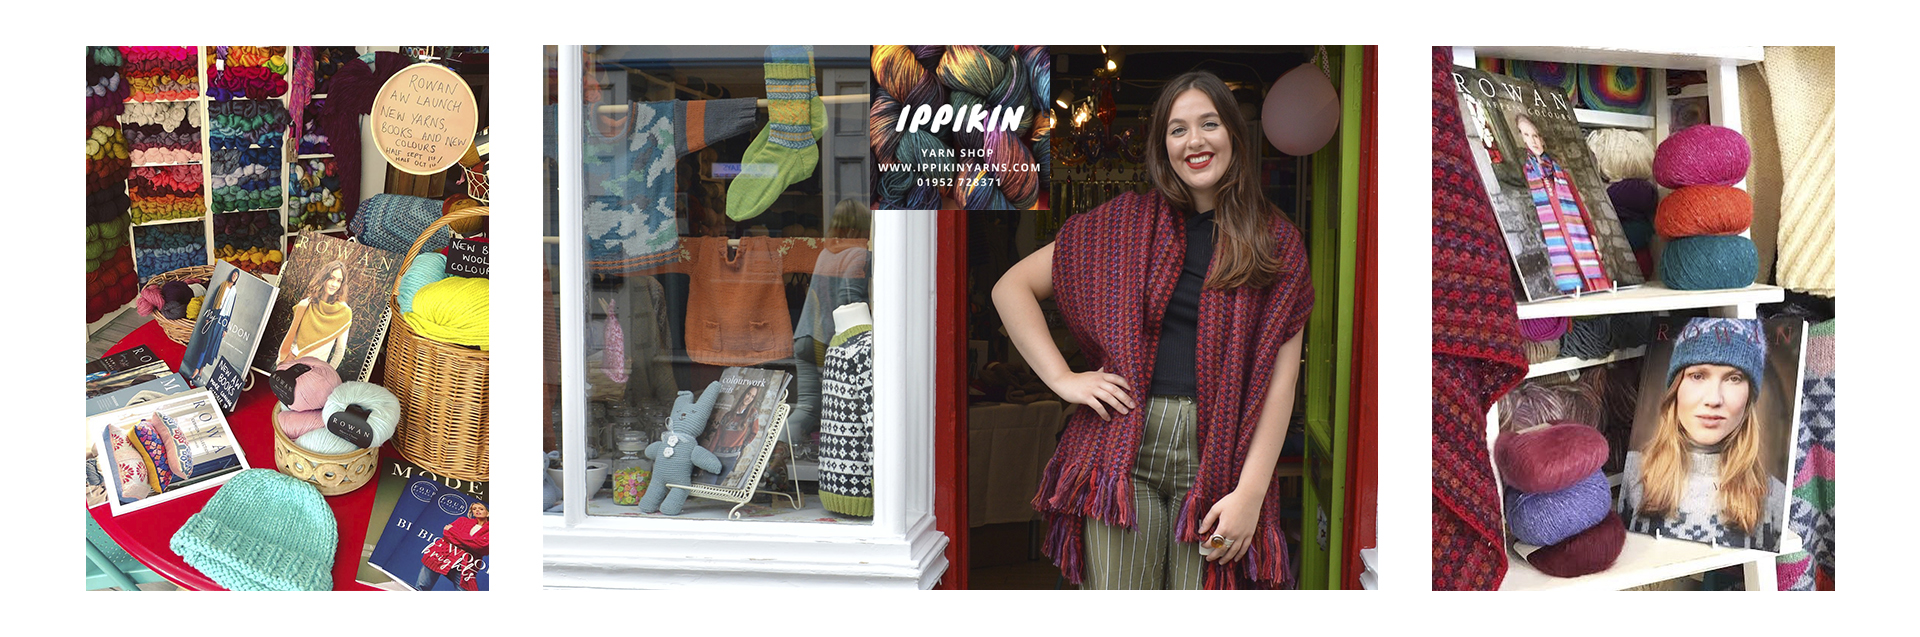 We're an independent family run yarn store nestled in the heart of Much Wenlock. Our shop is made up of everything you need to create beautiful hand knits and crochet masterpieces or if you cannot visit we are happy to take mail orders.